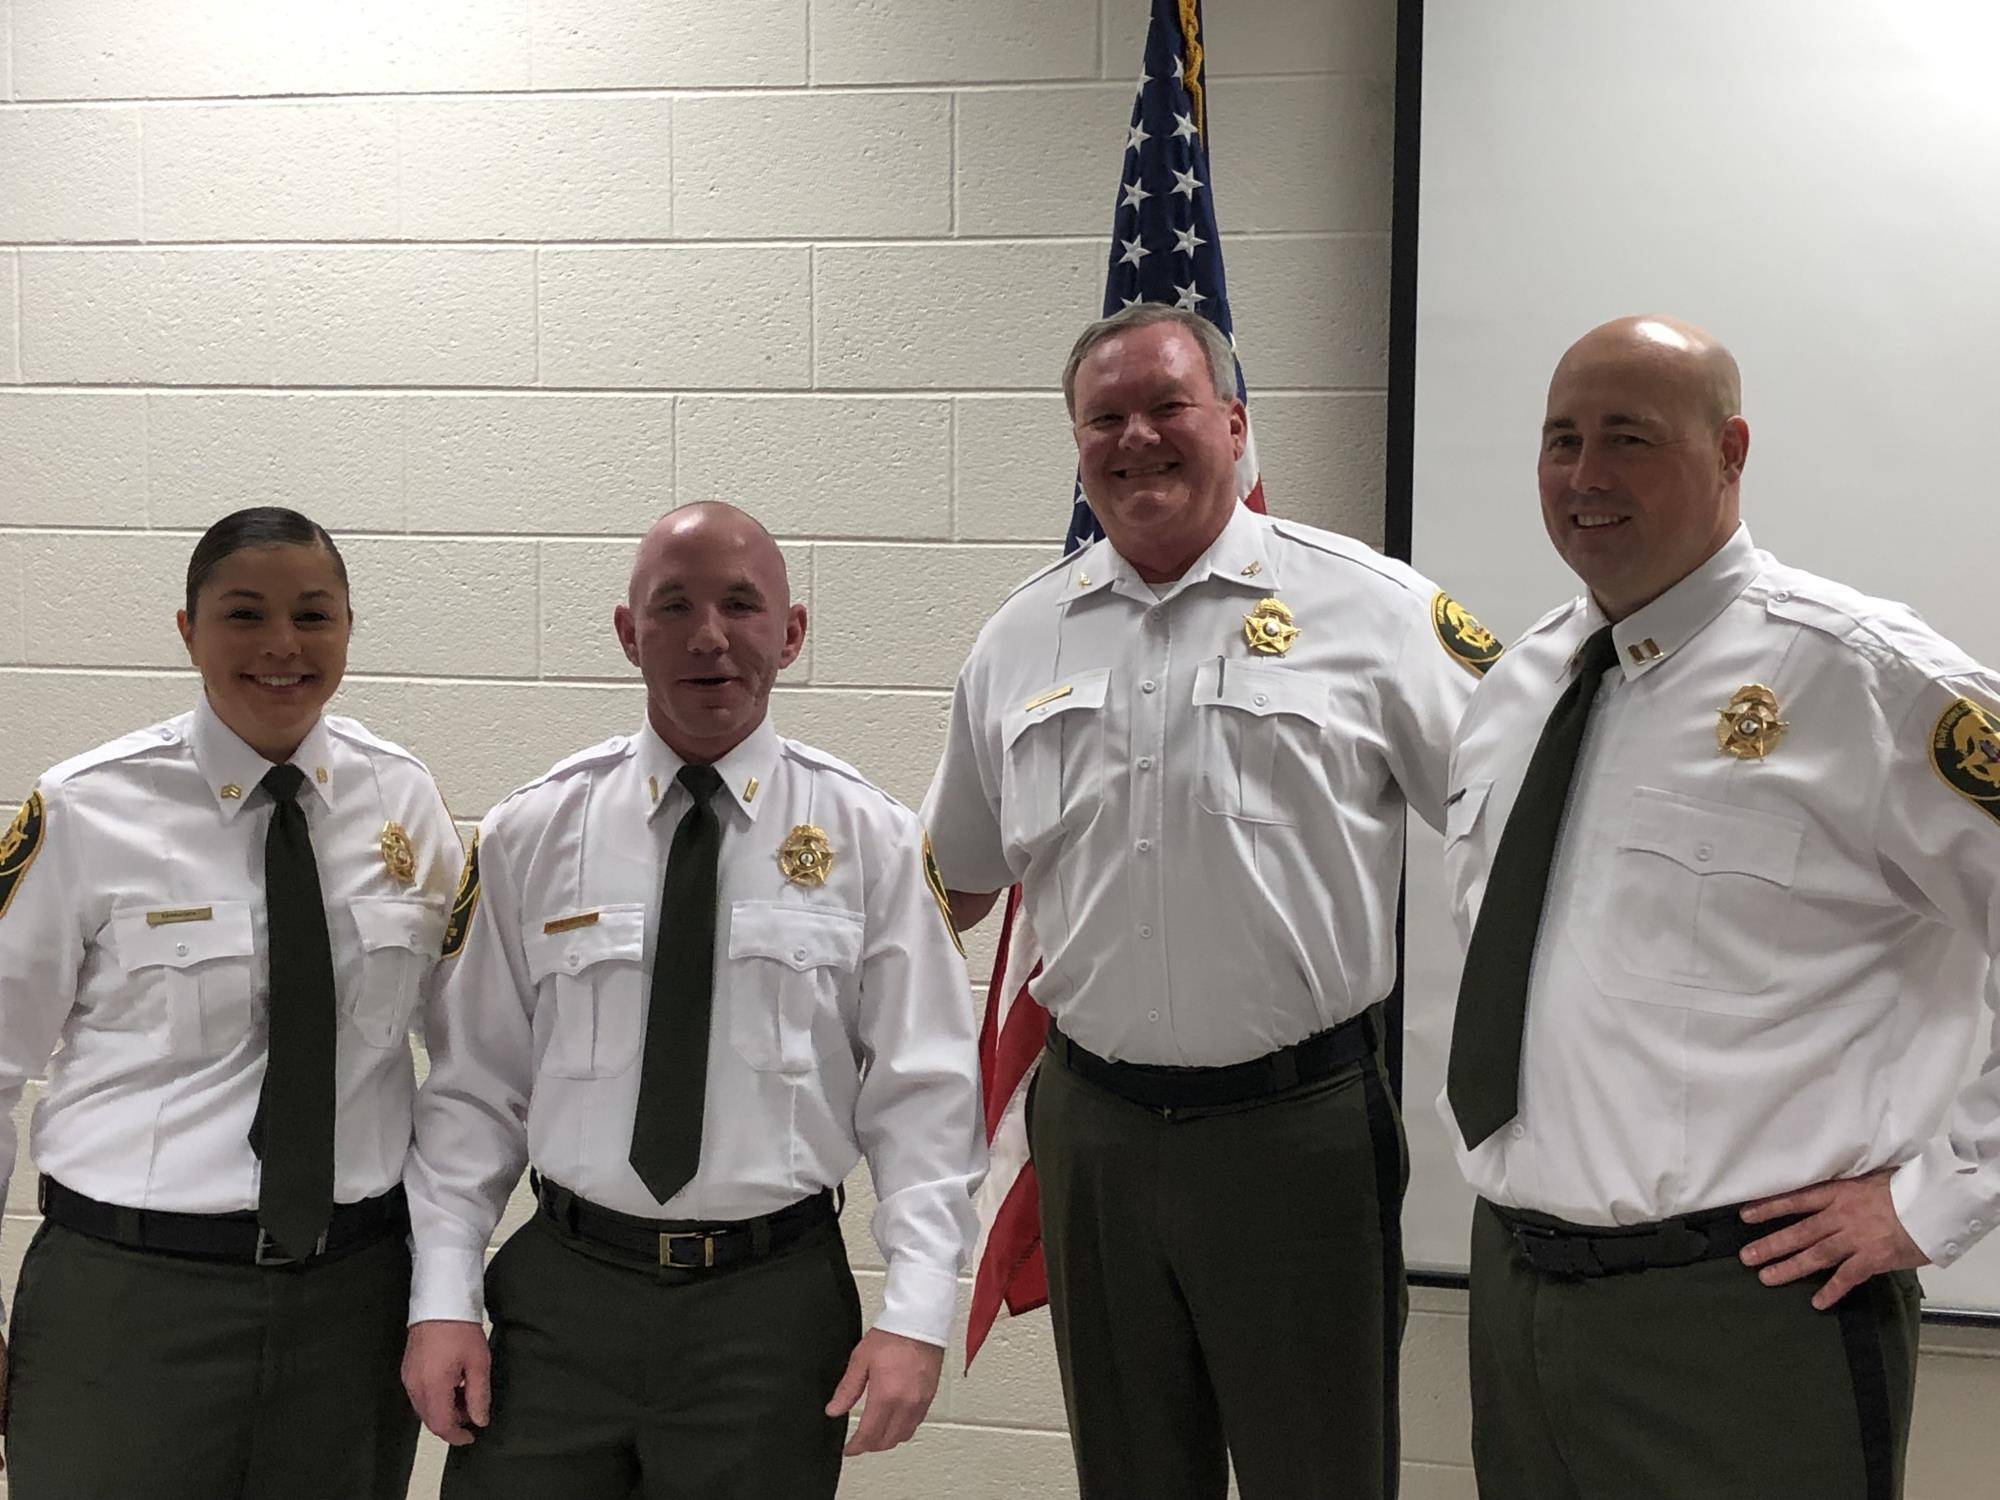 Promotions at the Regional Jail